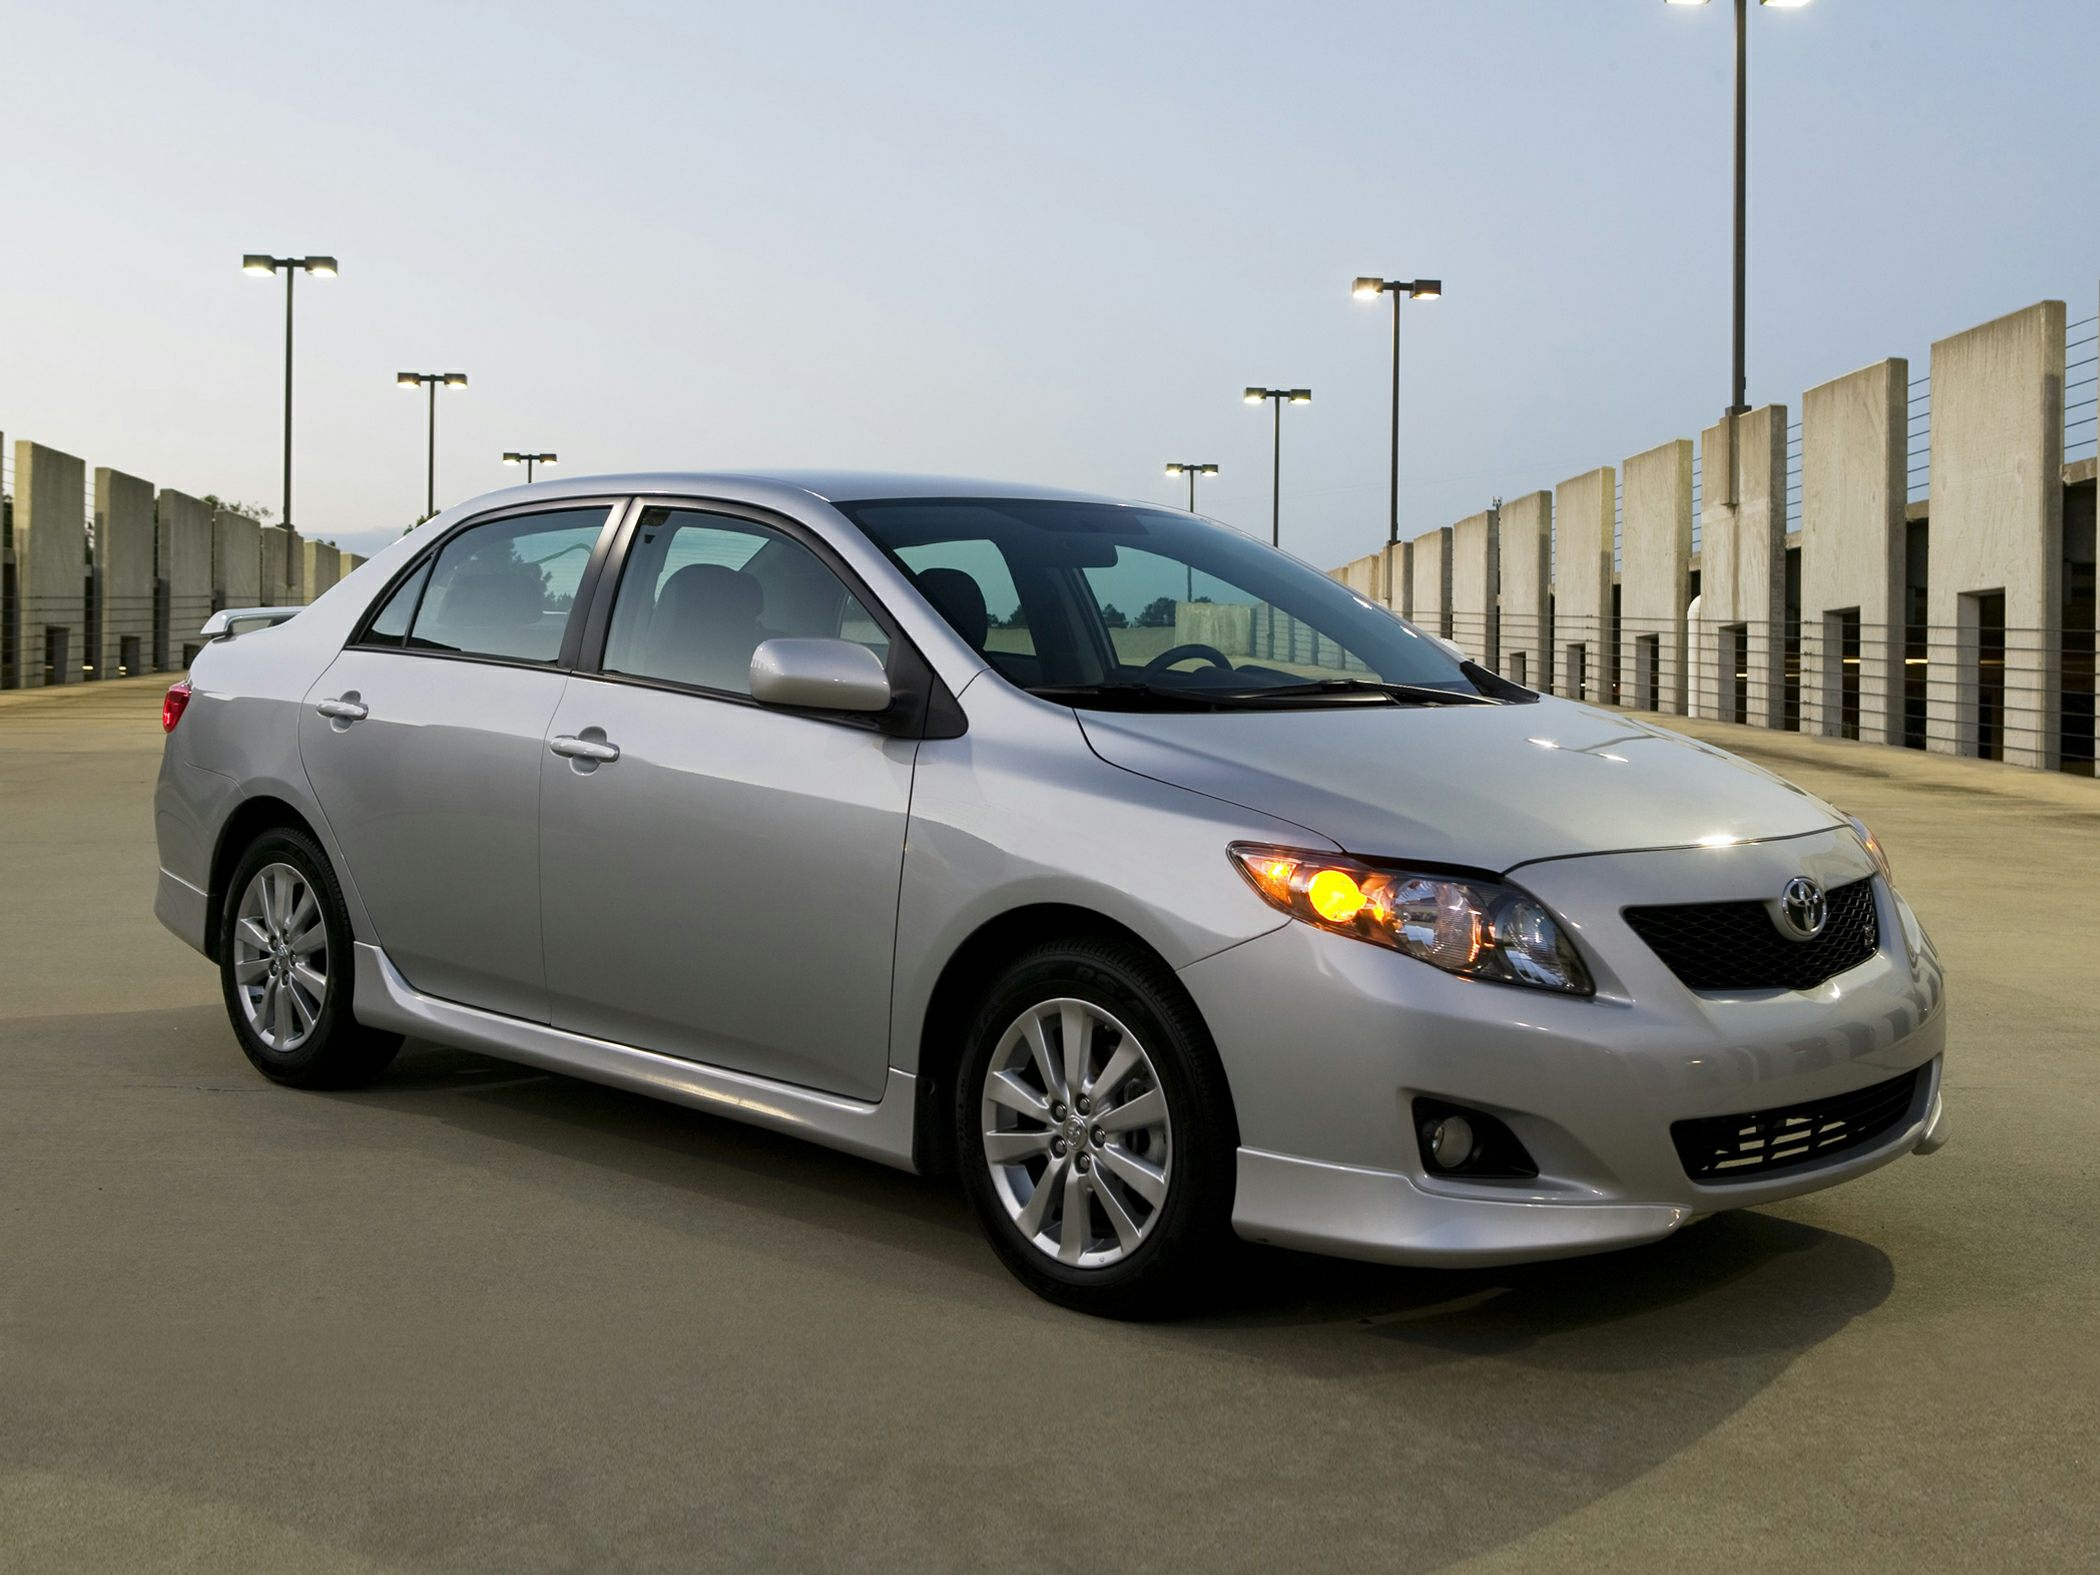 2010 Toyota Corolla S Only one owner Super gas saver New Arrival Looking for an amazing value on